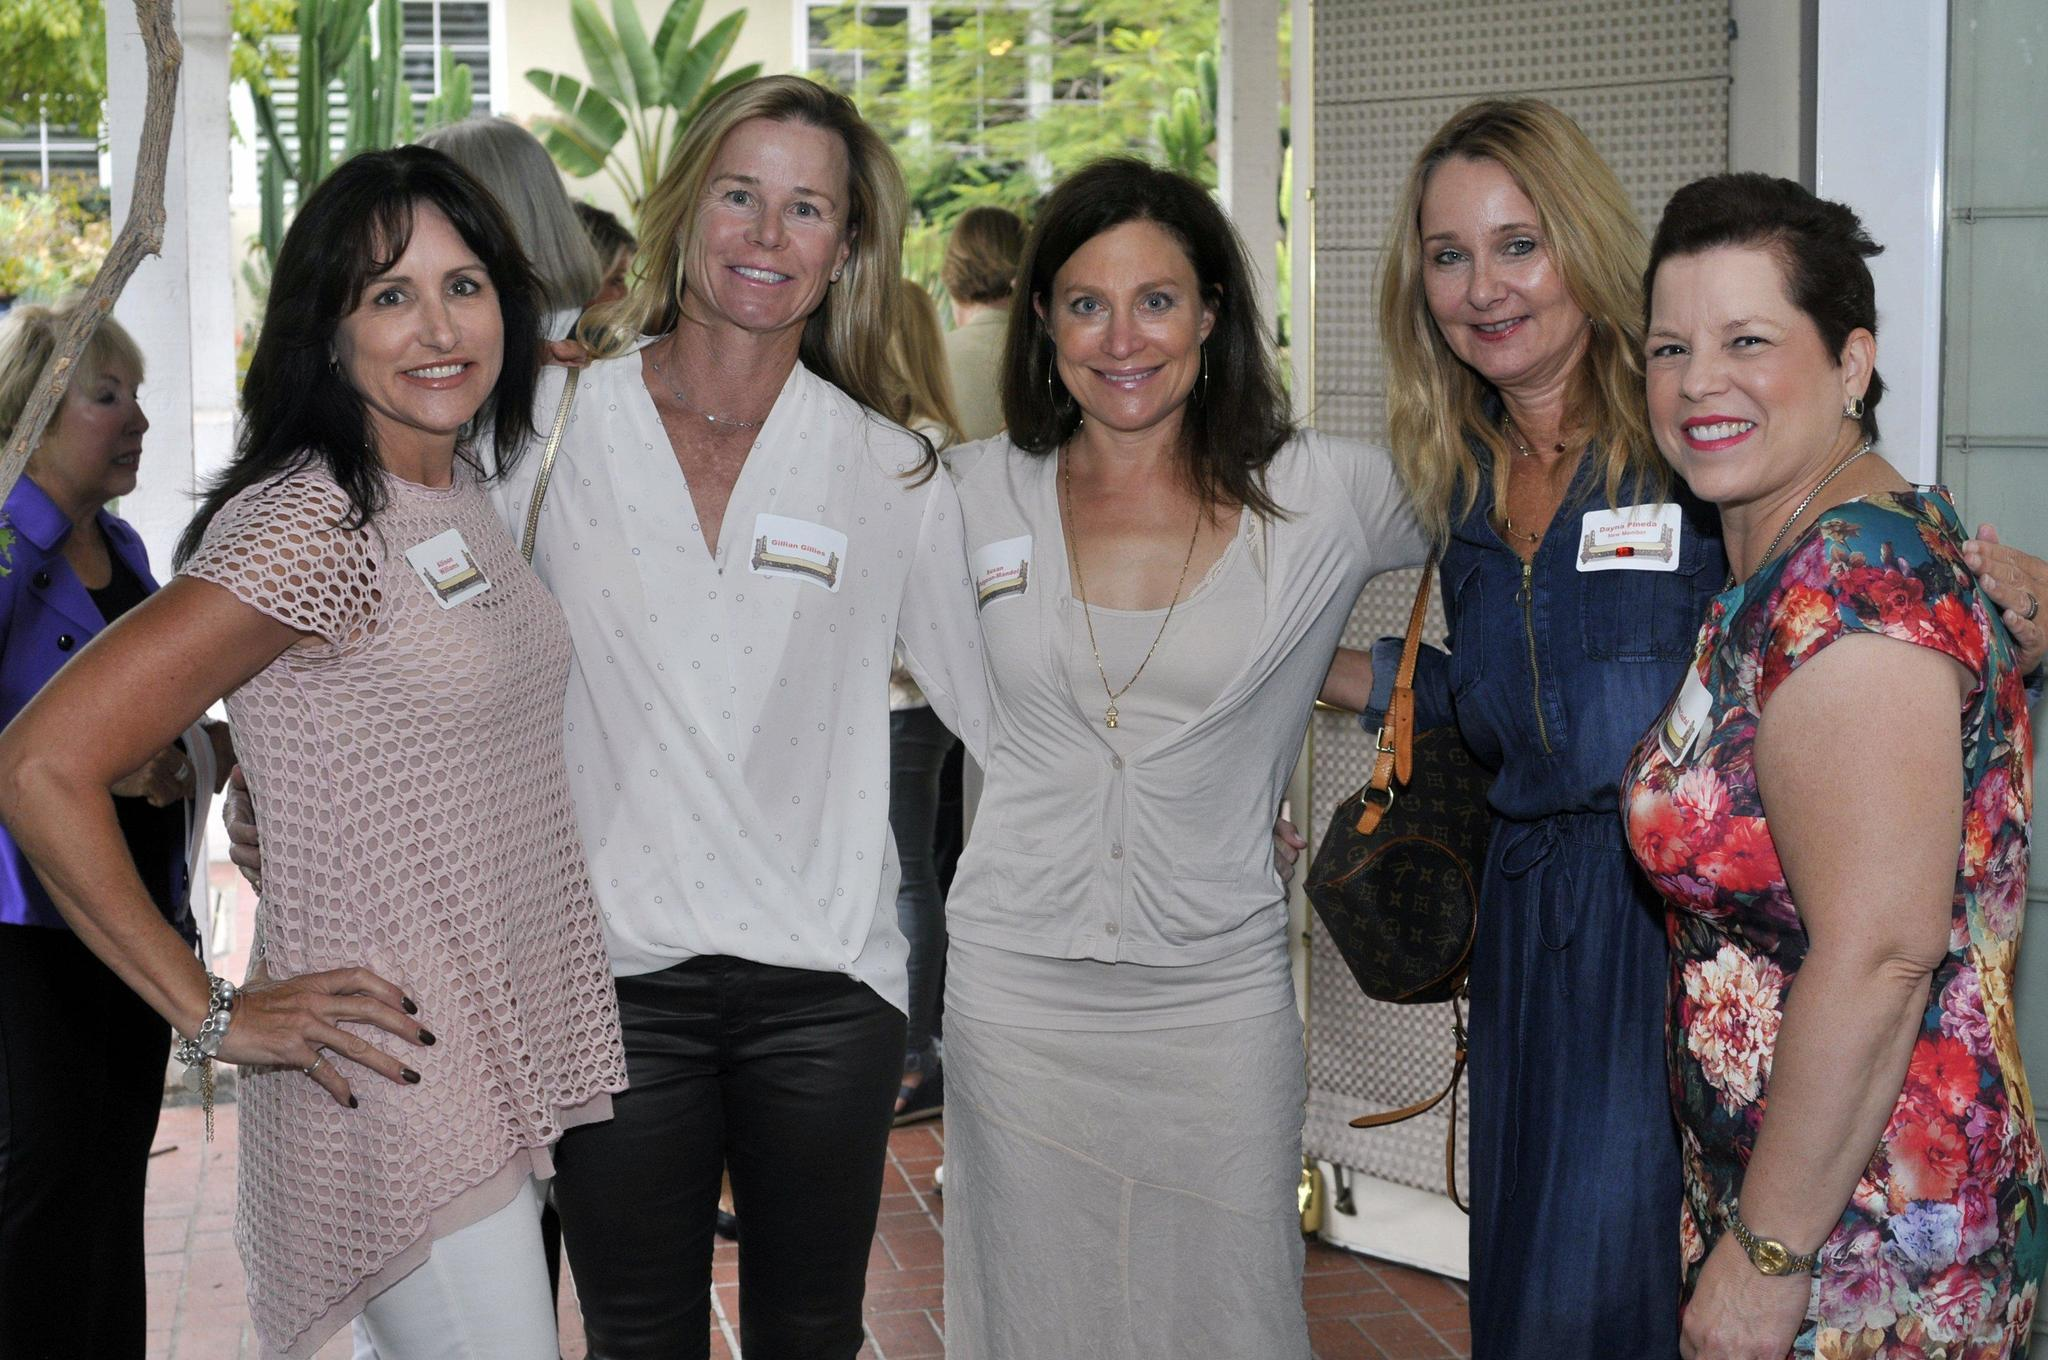 rancho santa fe milf women See luxury homes listed in rancho santa fe by lucy kelts team, premiere rsf realtors award winning search tools and.